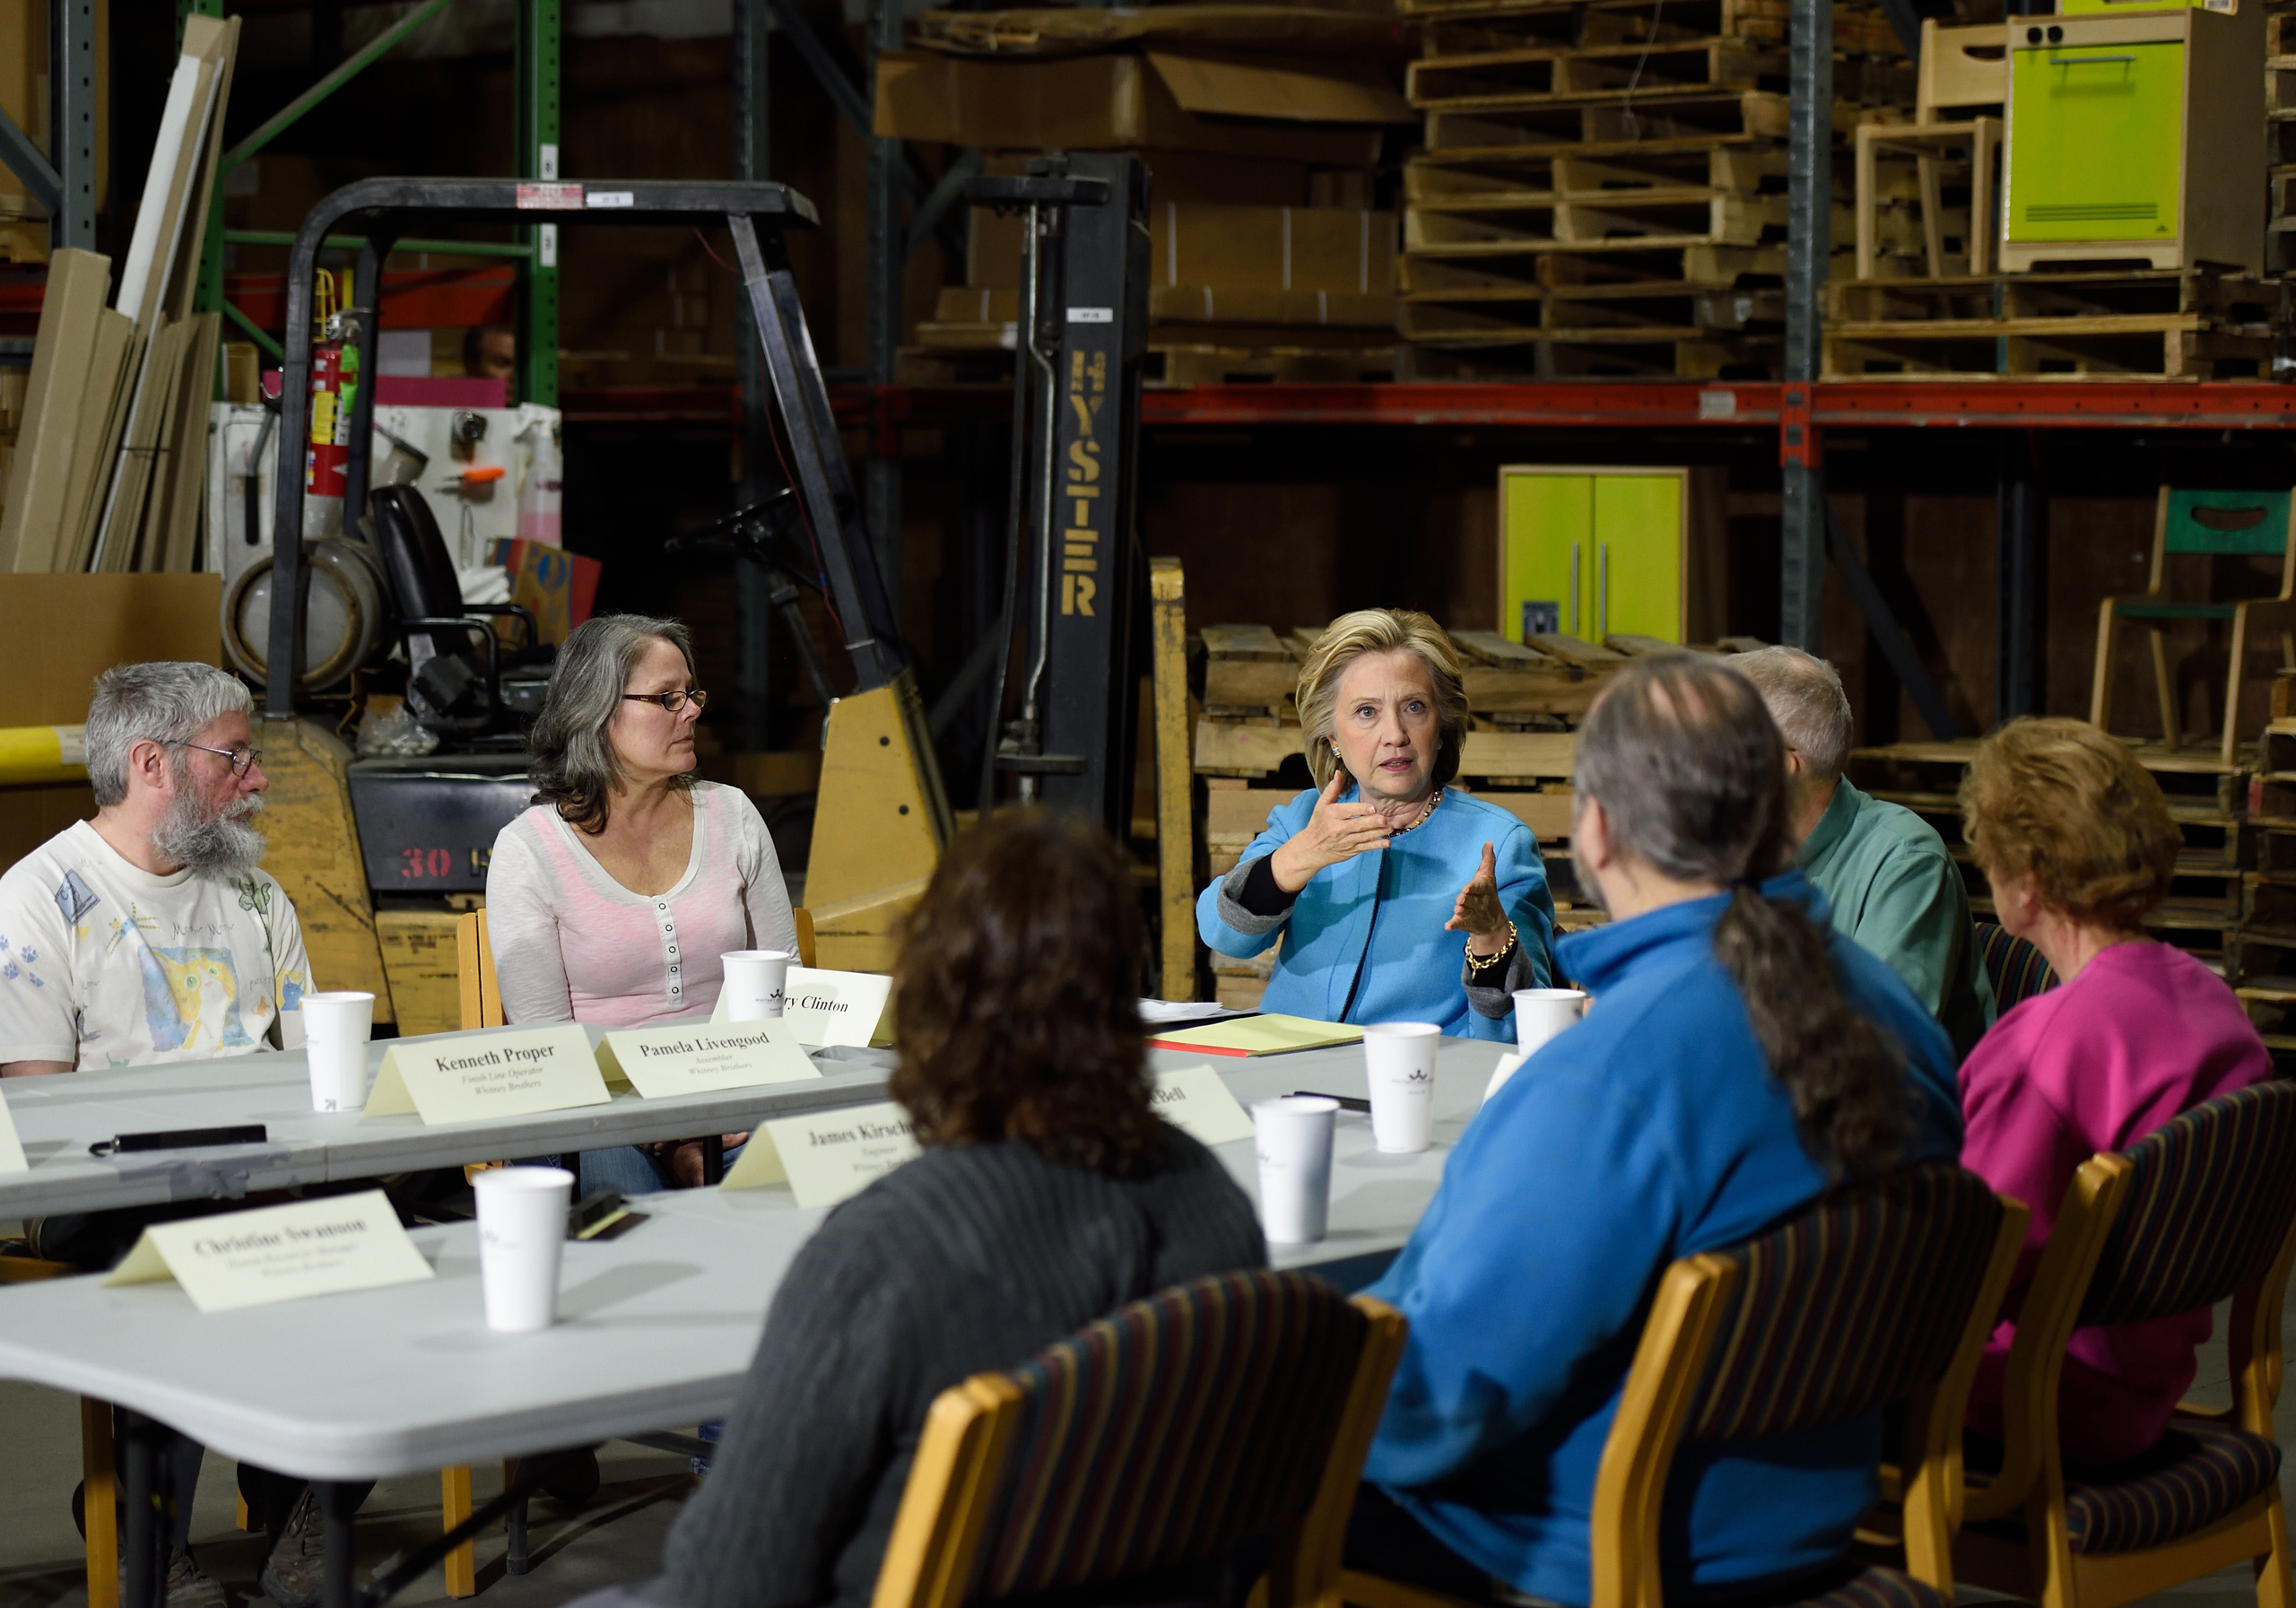 Hillary Clinton participates in a round table discussion with Pam Livengood, middle left, and Whitney Brothers management and employees in Keene, N.H. on April 20, 2015.